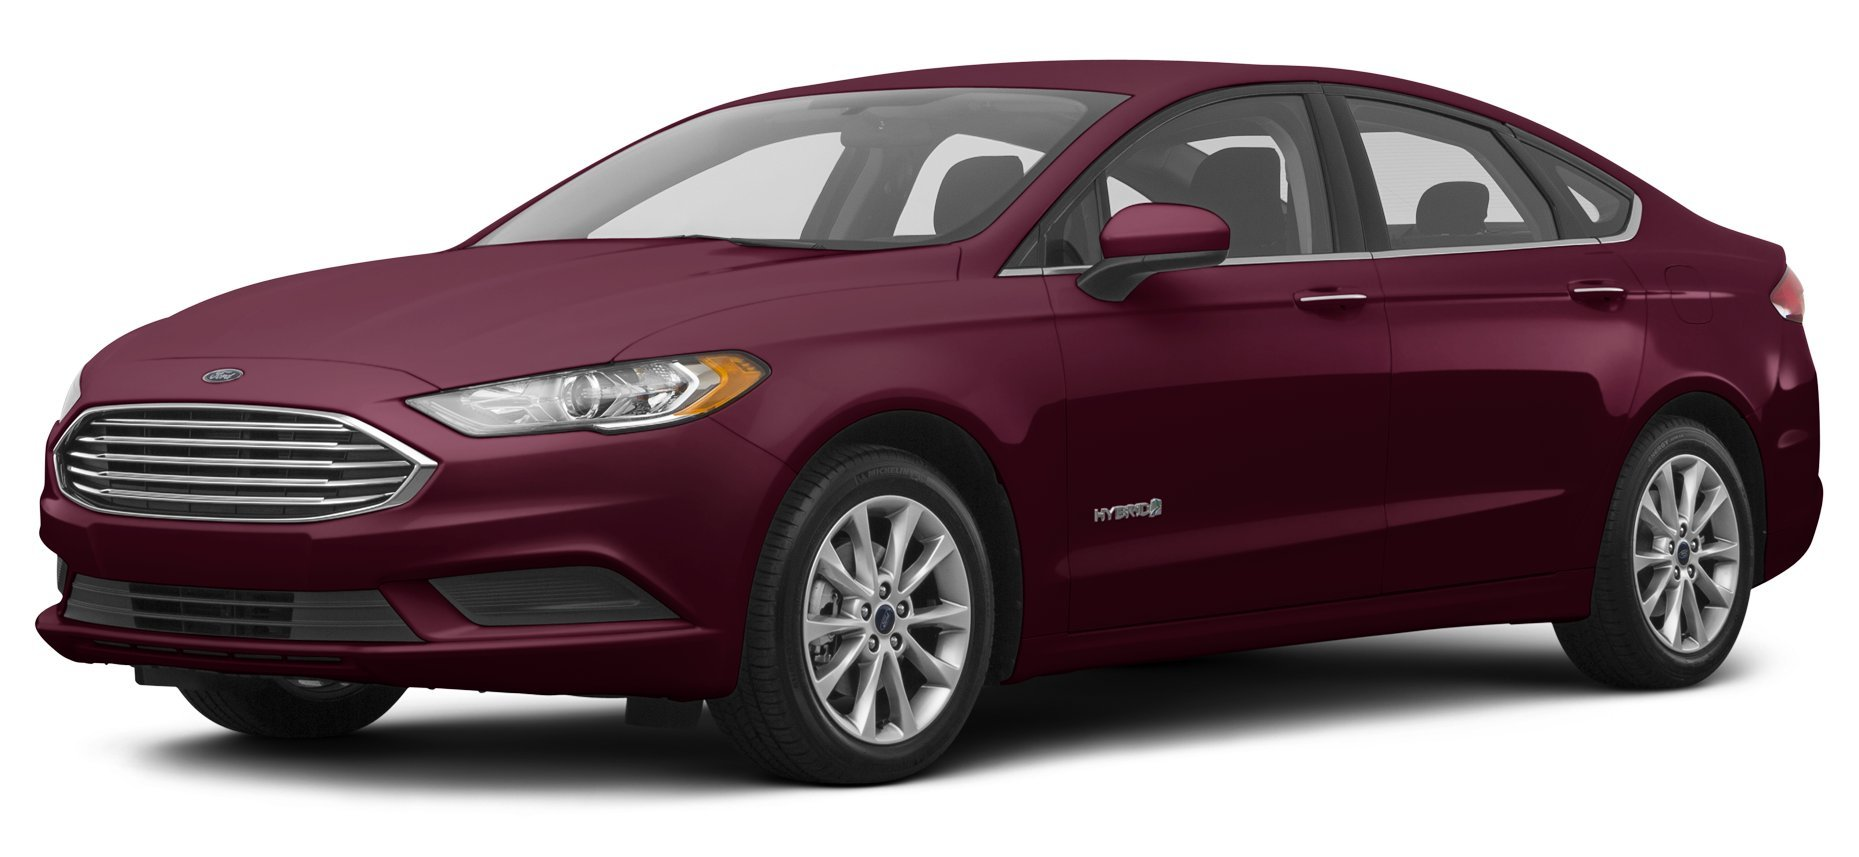 2017 mazda 6 grand touring automatic. Black Bedroom Furniture Sets. Home Design Ideas